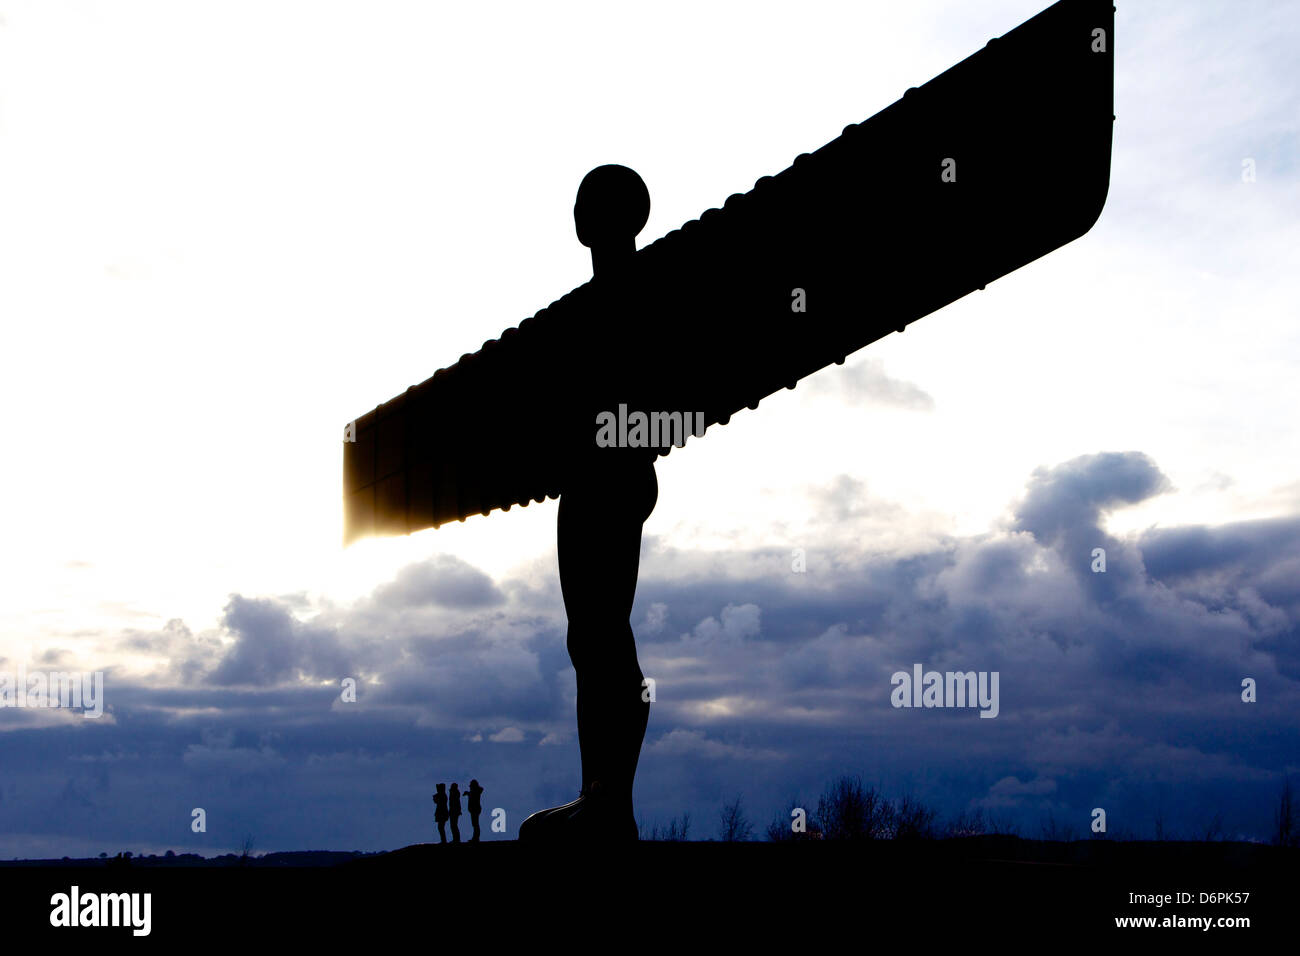 Angel of the North with people giving sense of perspective - Stock Image